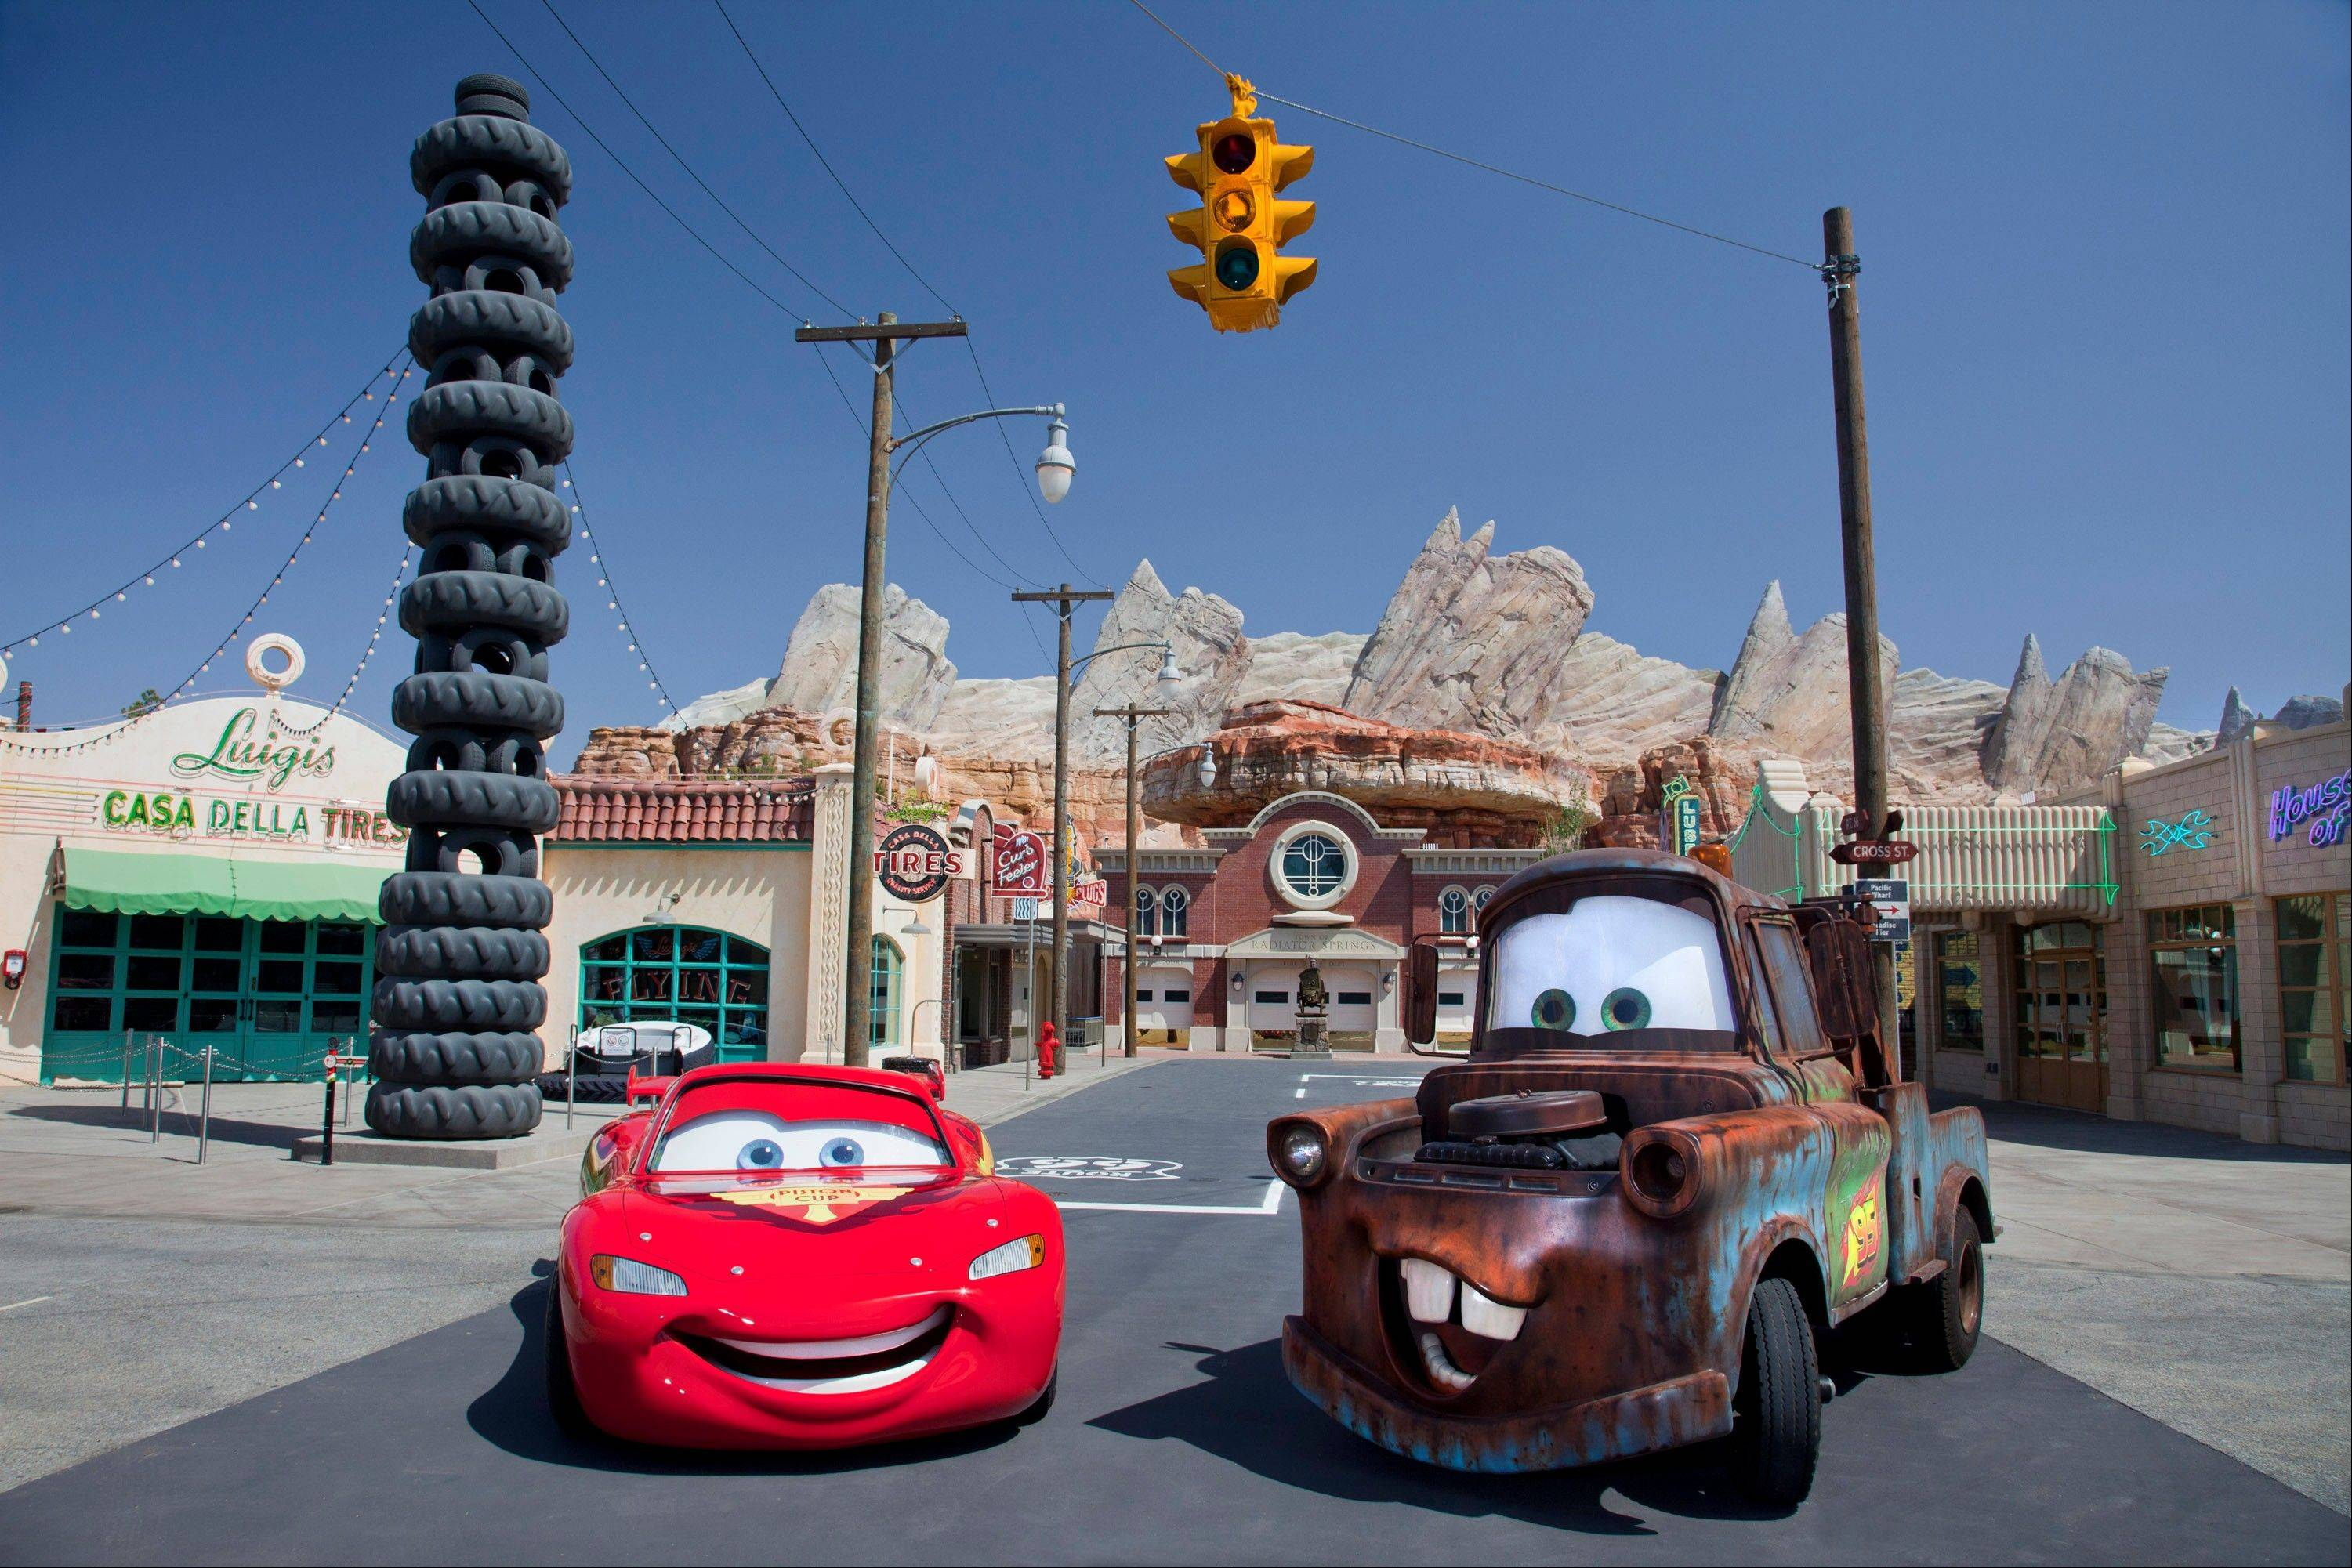 People with disabilities will no longer go straight to the front of lines for rides like Radiator Springs Racers at Disneyland and Walt Disney World after growing abuse of the system, park officials said Monday.